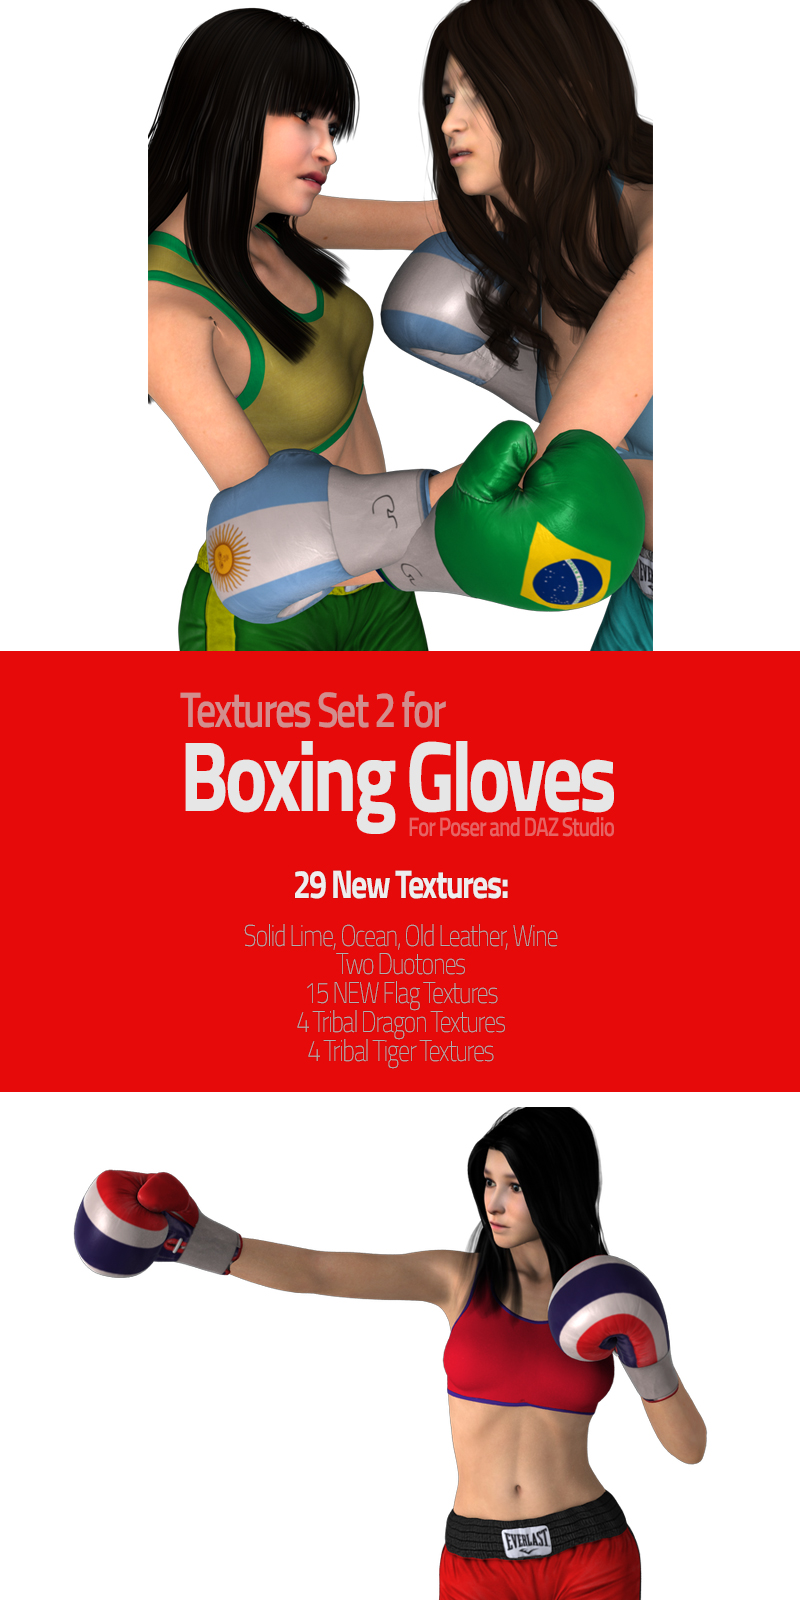 Textures Set 2 for Boxing Gloves - Extended License